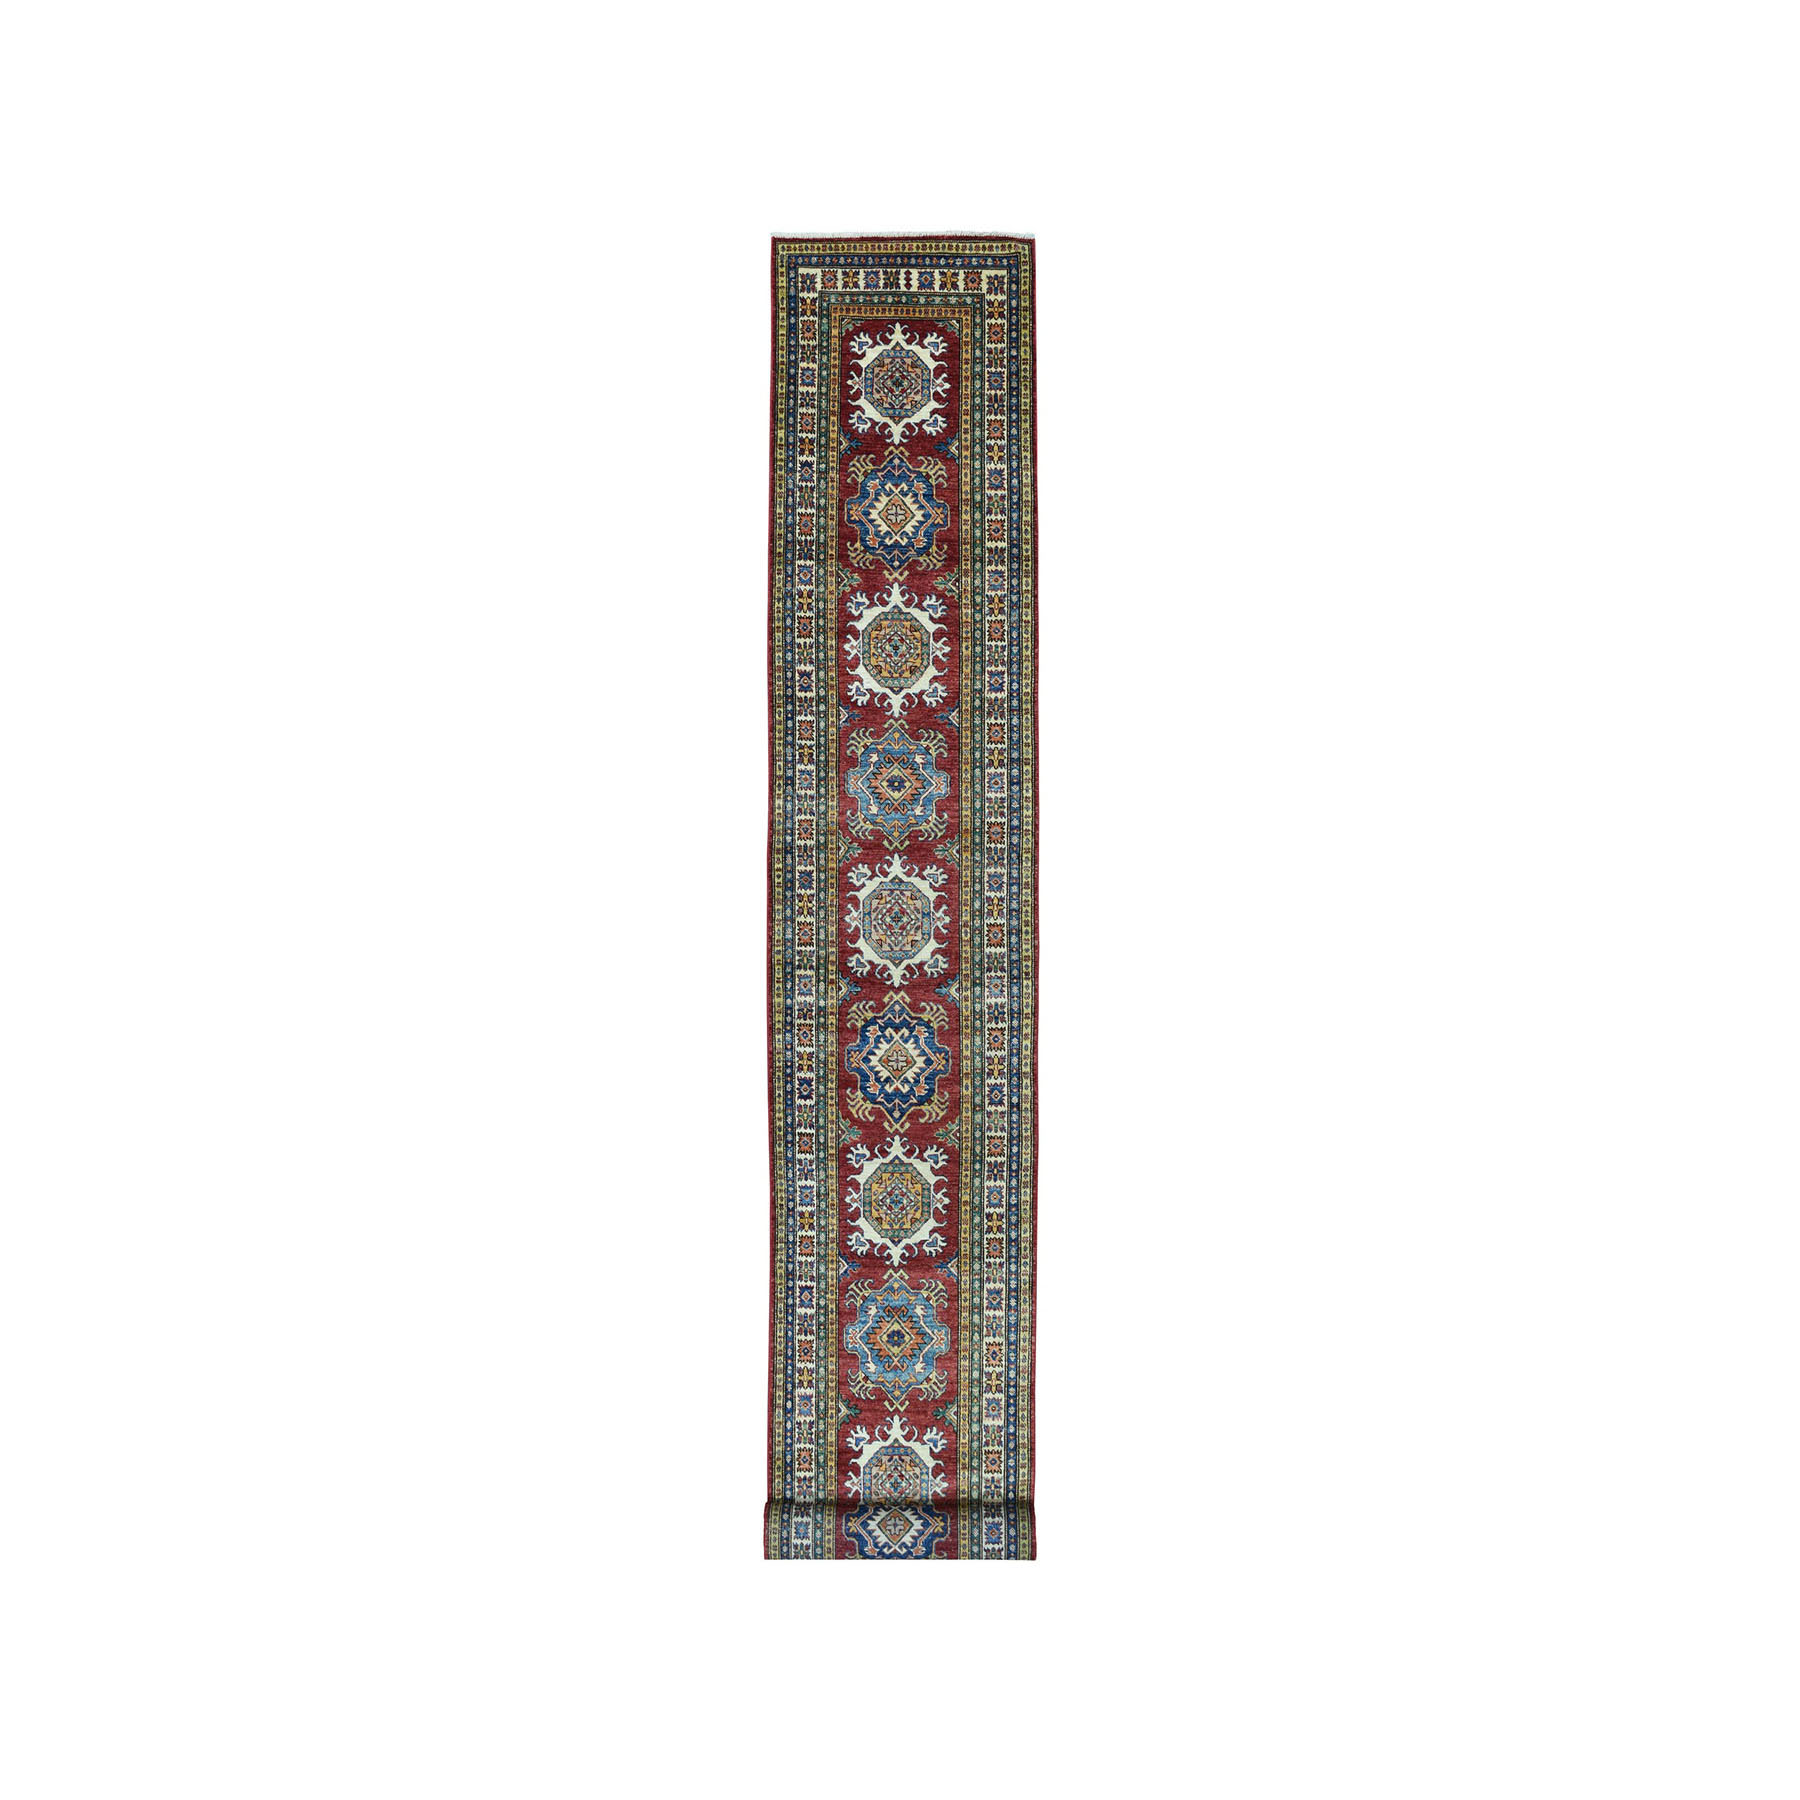 "2'8""x19'5"" Red Super Kazak Pure Wool Geometric Design Hand-Knotted XL Runner Oriental Rug"